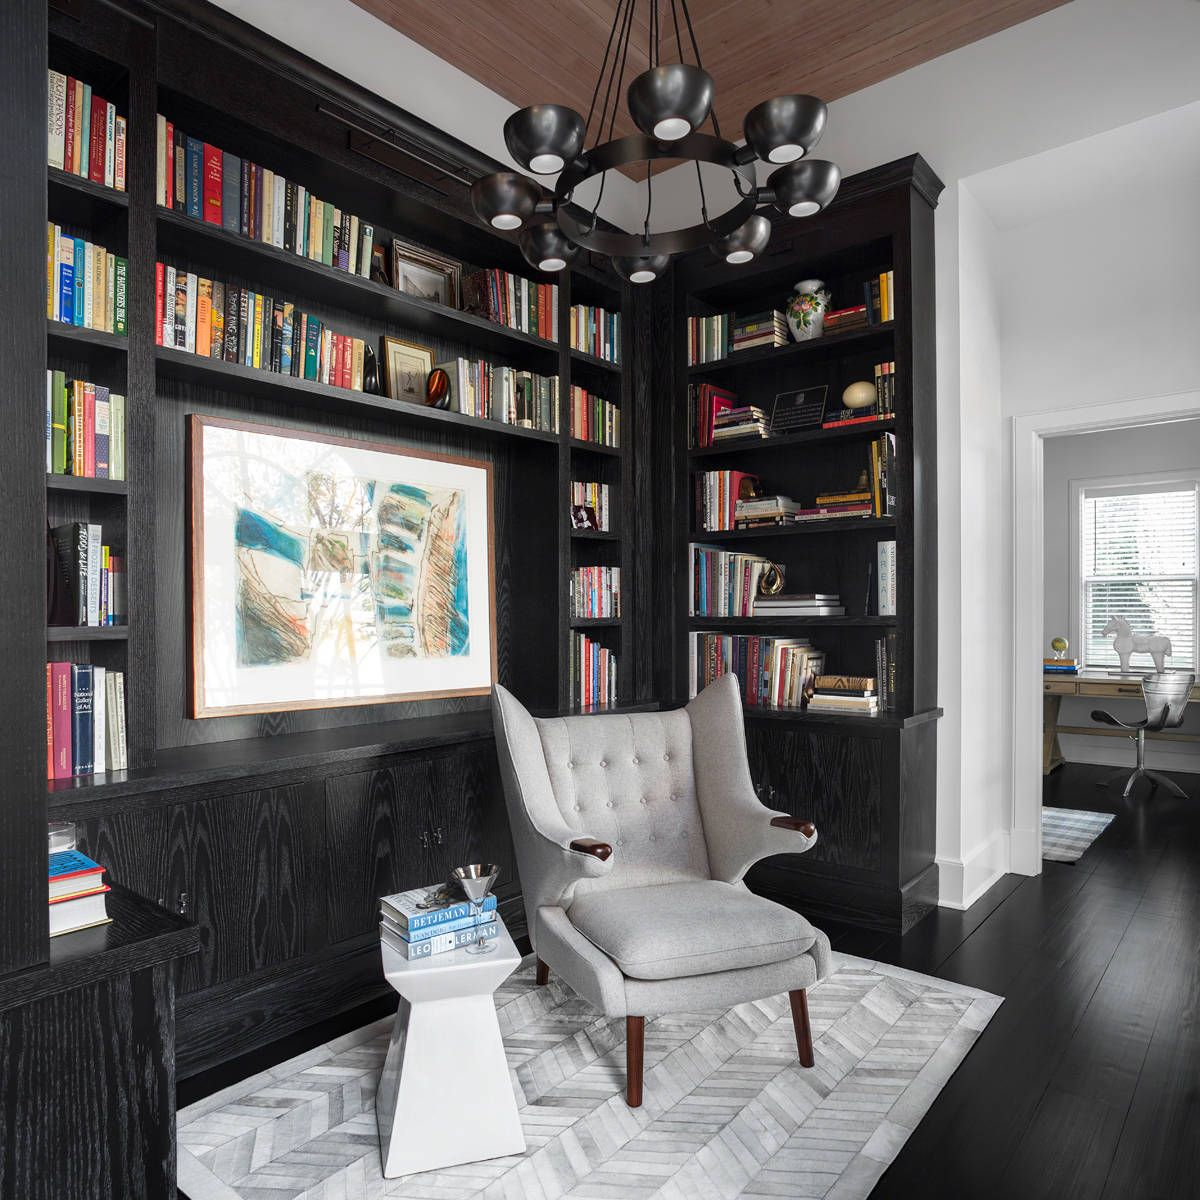 Black in the living room becomes that much more prominent when coupled with black flooring